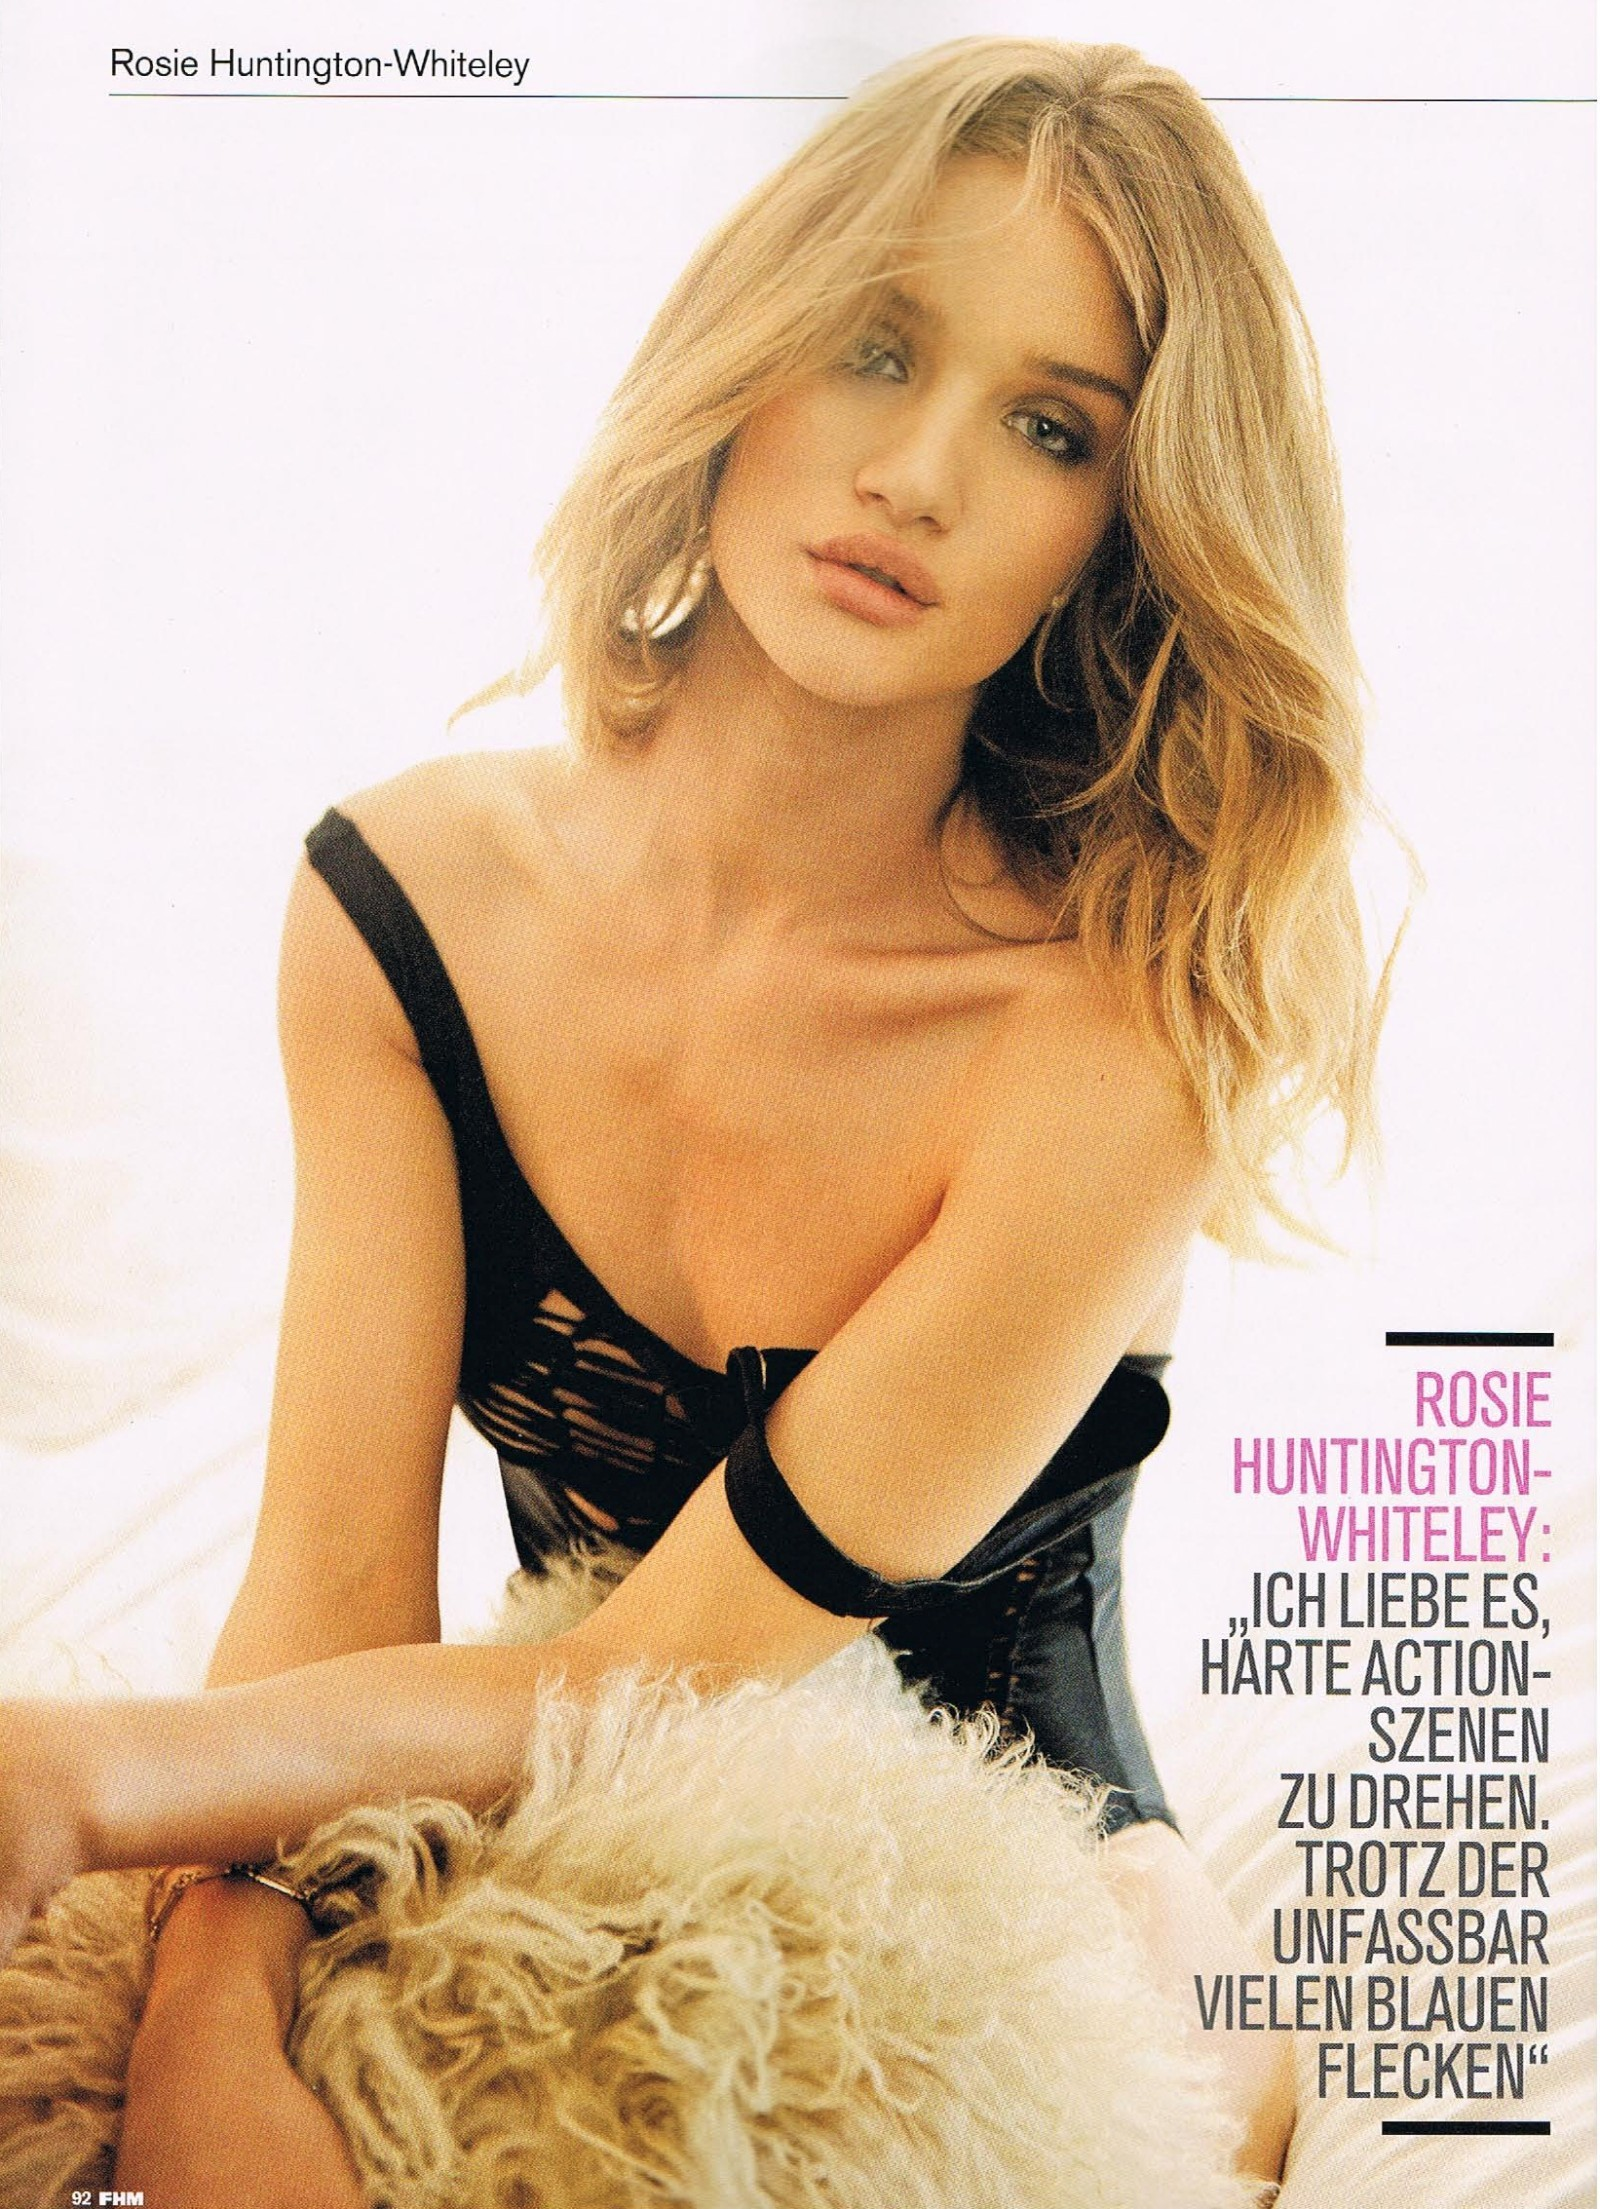 6855b9bfb1 Rosie Huntington-whiteley images FHM Germany Magazine (July 2011) HD  wallpaper and background photos